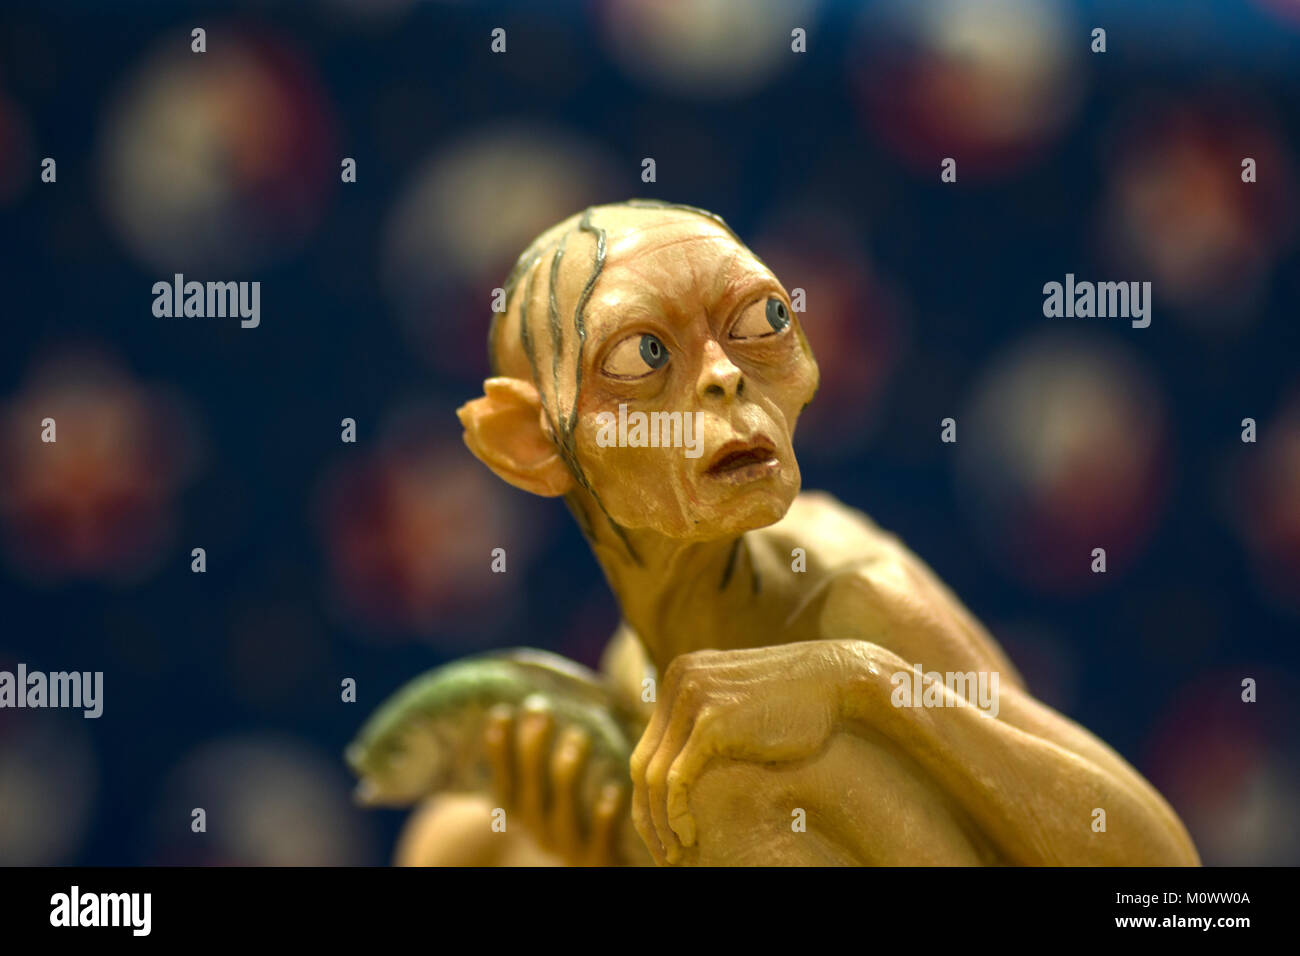 Gollum - Stock Image  sc 1 st  Alamy & Gollum Stock Photos u0026 Gollum Stock Images - Alamy